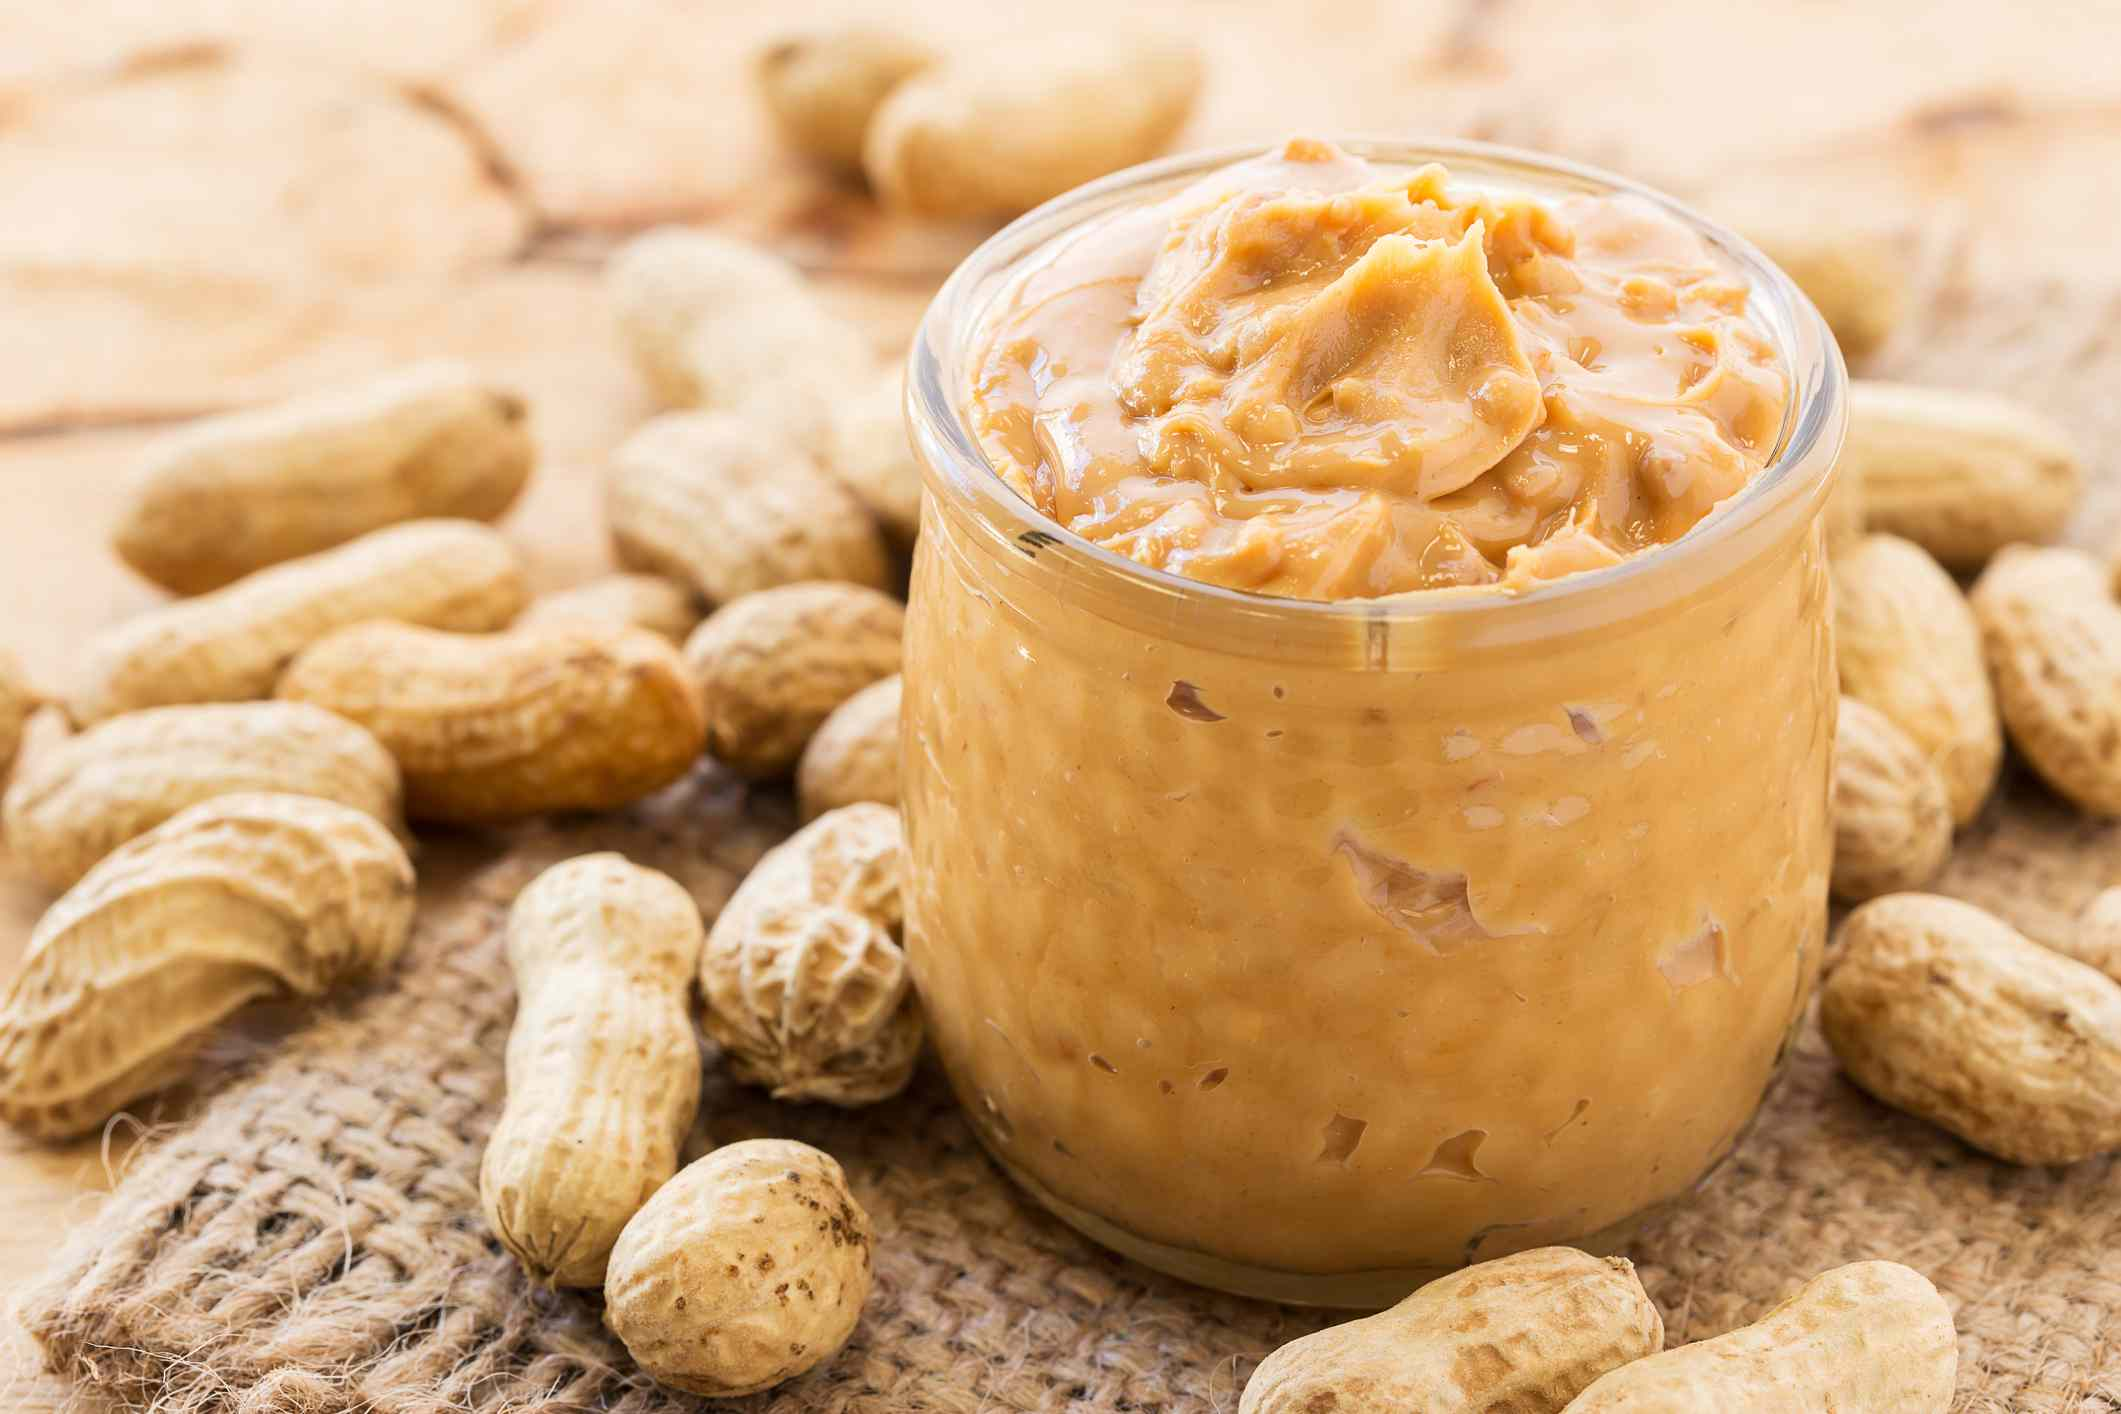 peanut butter jar in front of whole peanuts